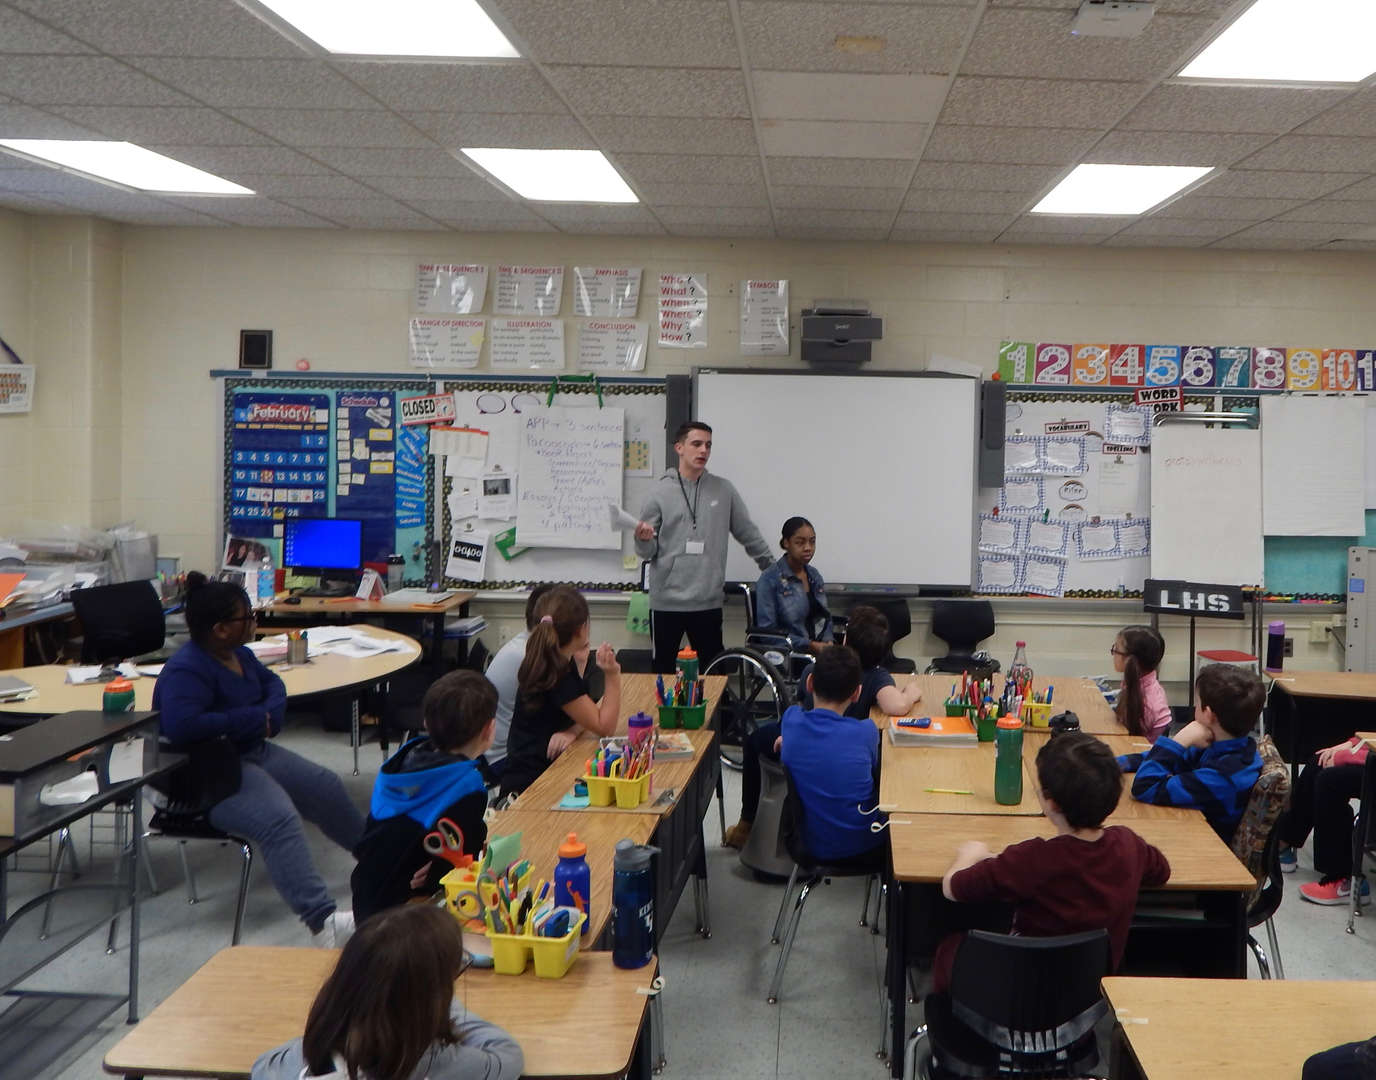 High School students speaking to younger students.